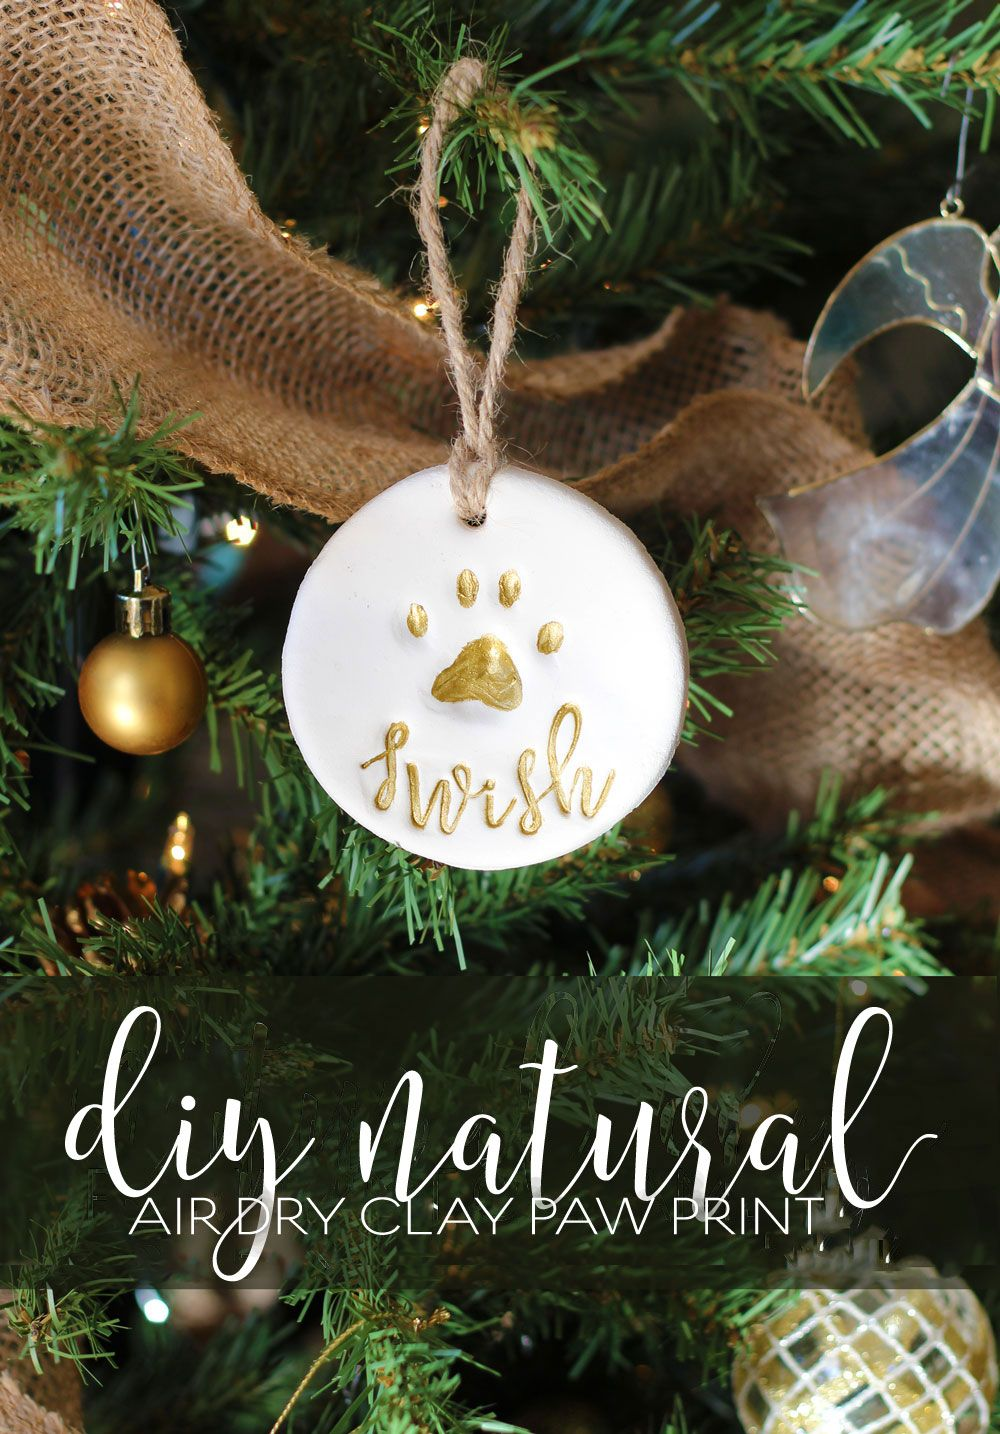 Pet Gift Basket With Personalized All Natural Diy Air Dry Clay Paw Print Ornament Paw Print Ornament Paw Print Crafts Pet Gift Basket